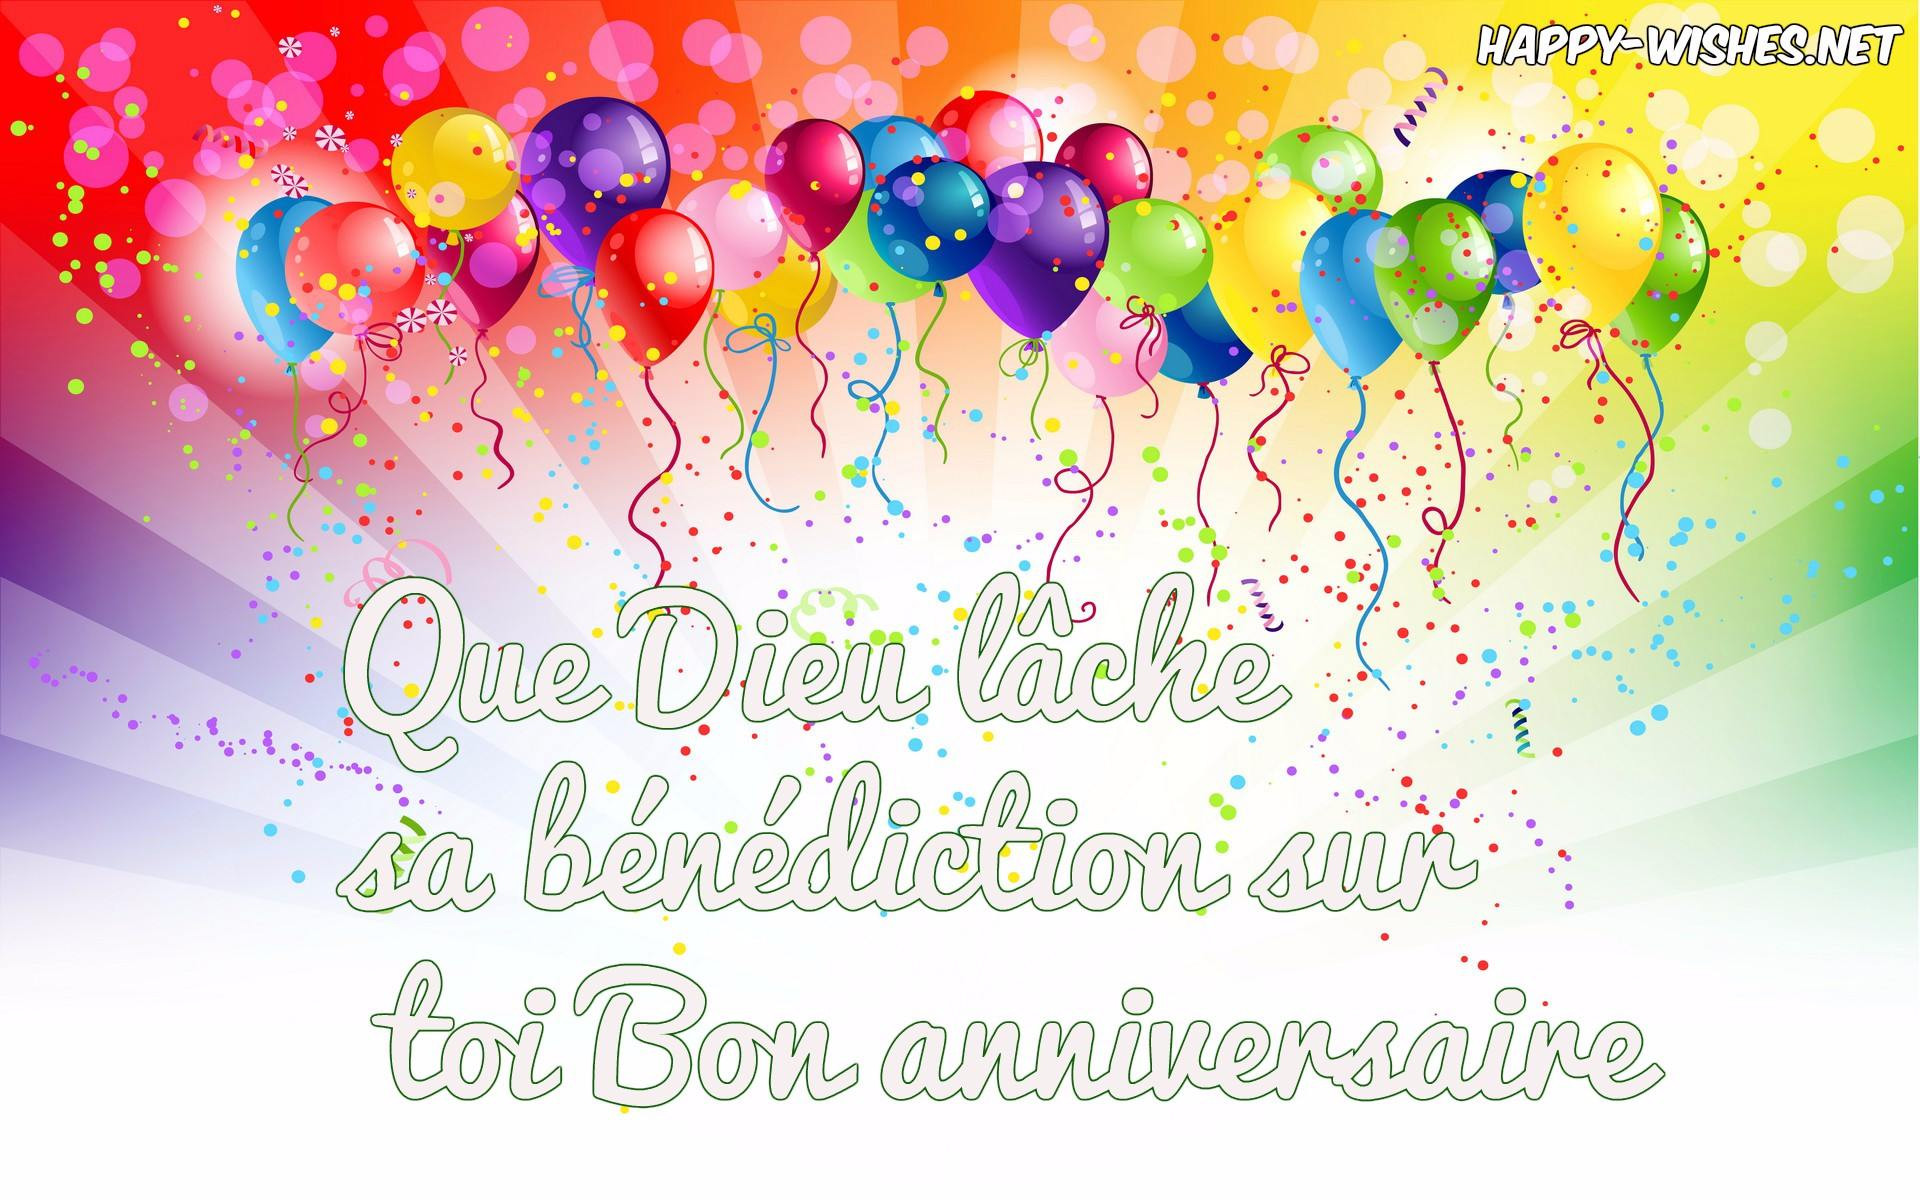 Best ideas about Birthday Wishes In French . Save or Pin Happy Birthday Wishes In French Bon anniversaire Happy Now.